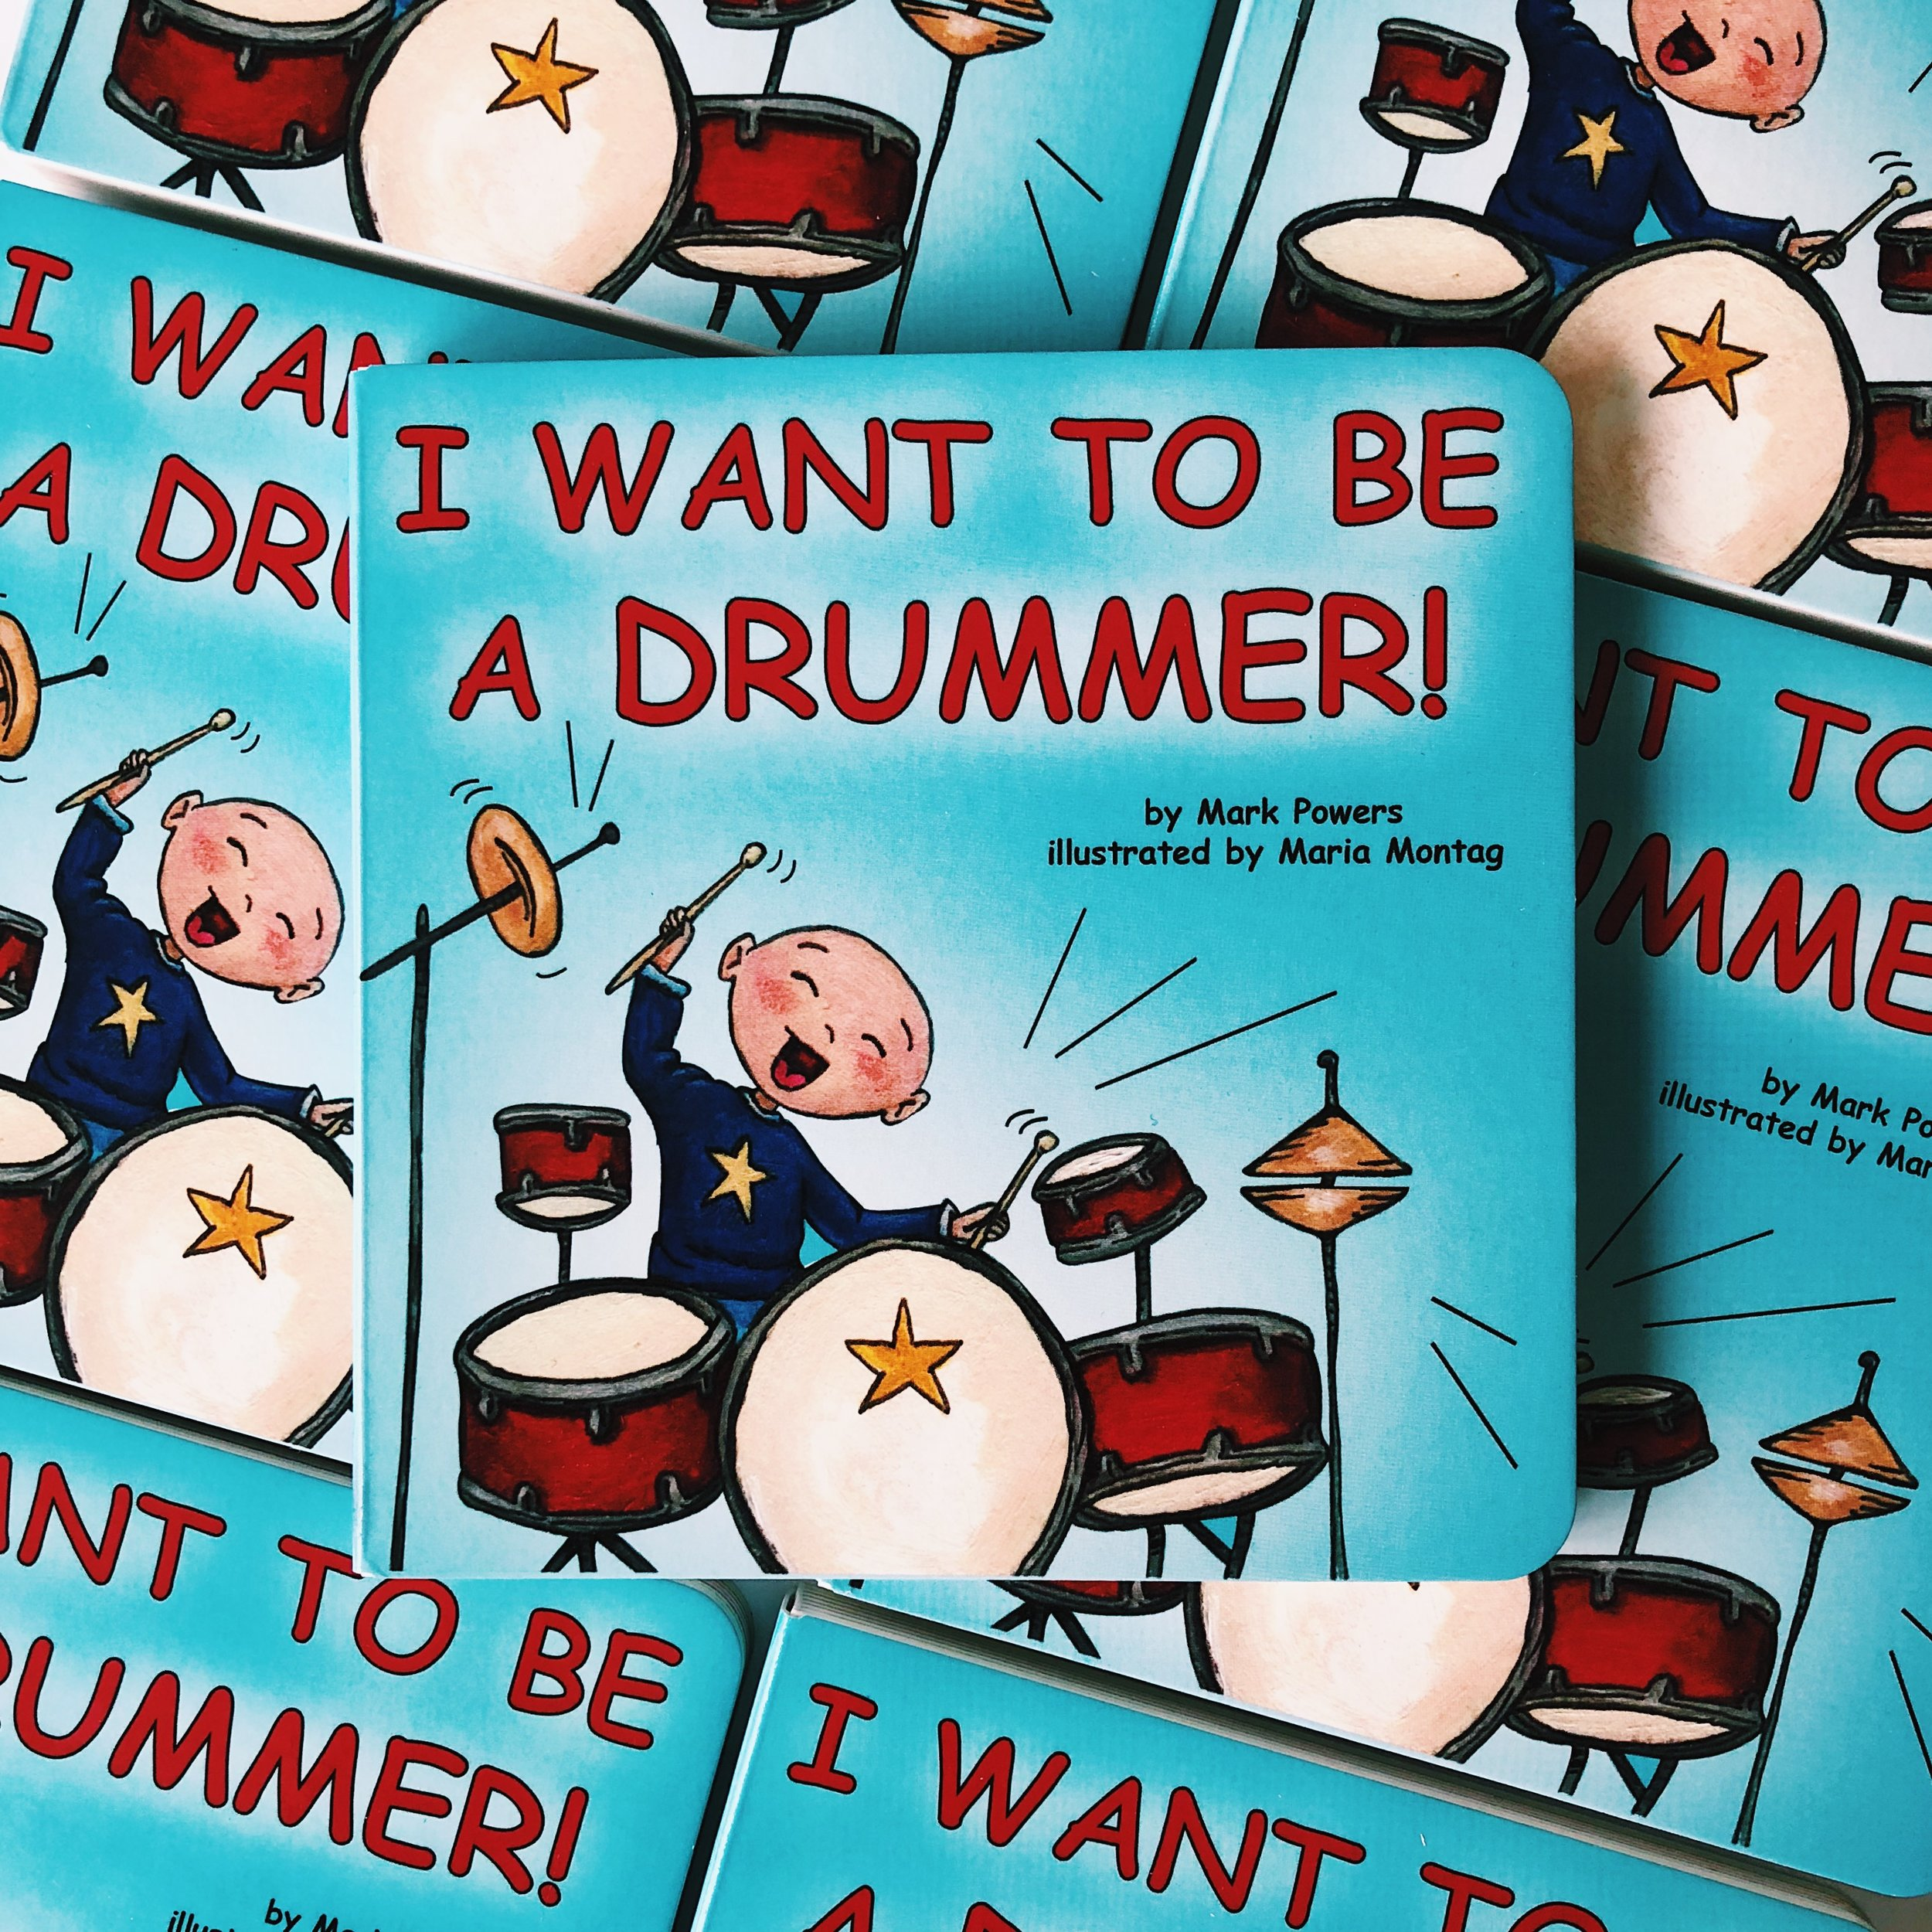 blue manatee press_i want to be a drummer.JPG